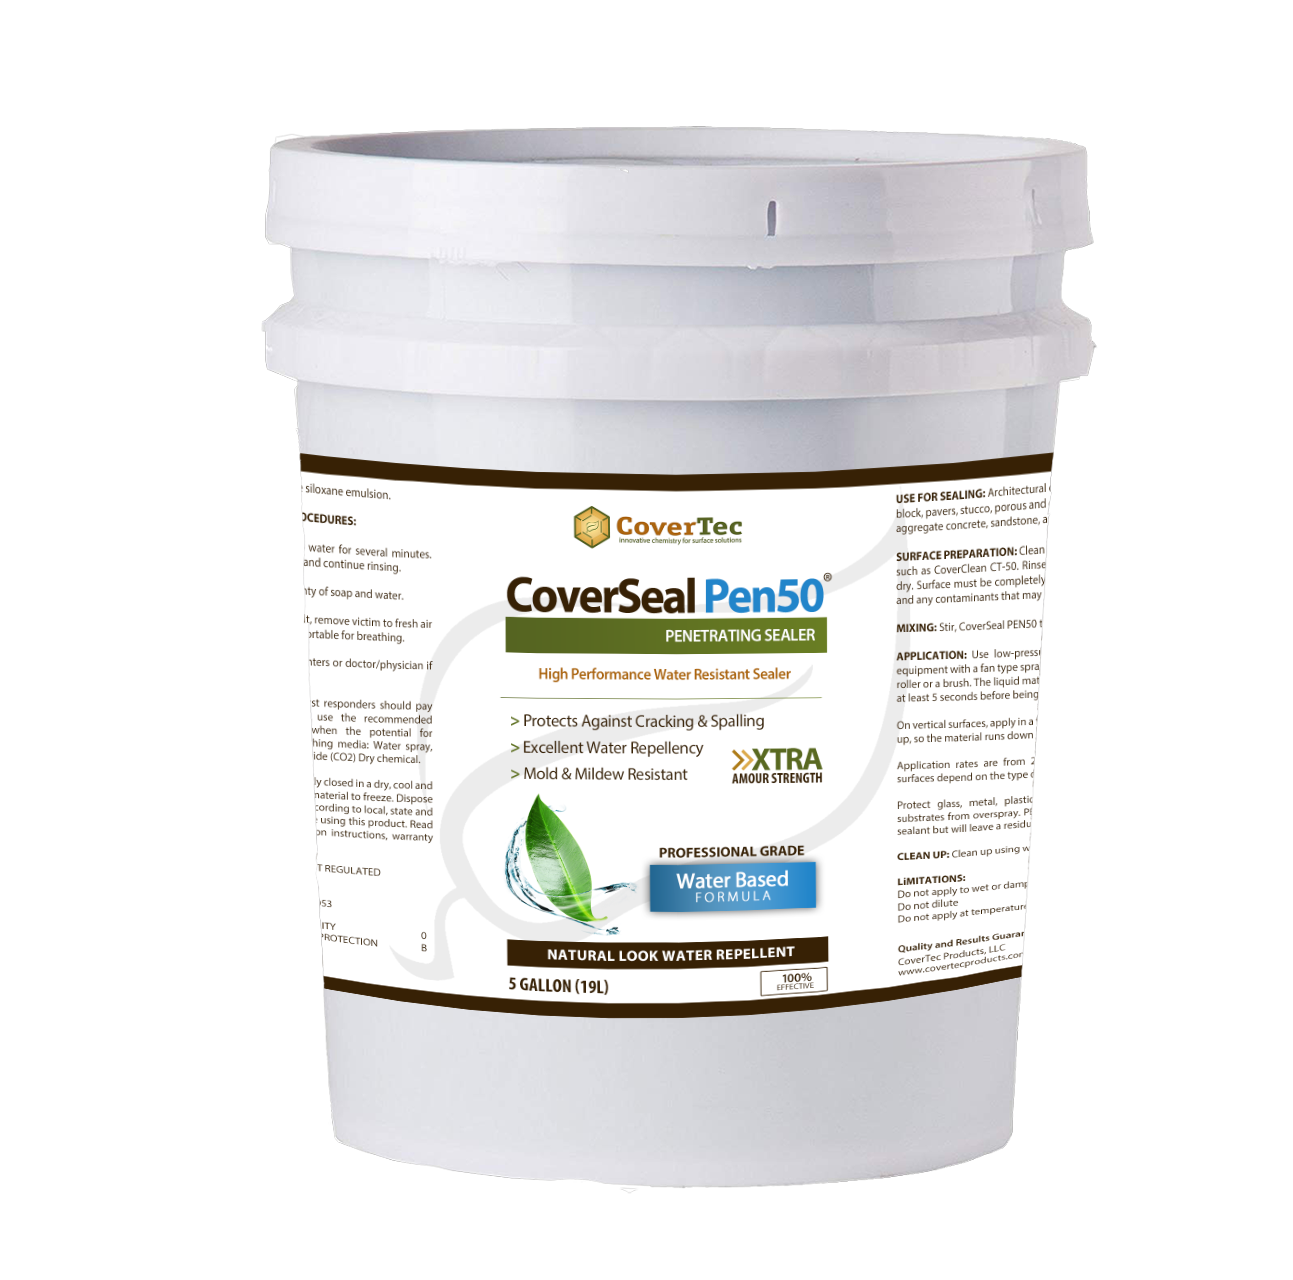 CoverSeal PEN 50 Water And Mold Resistant Penetrating Sealer